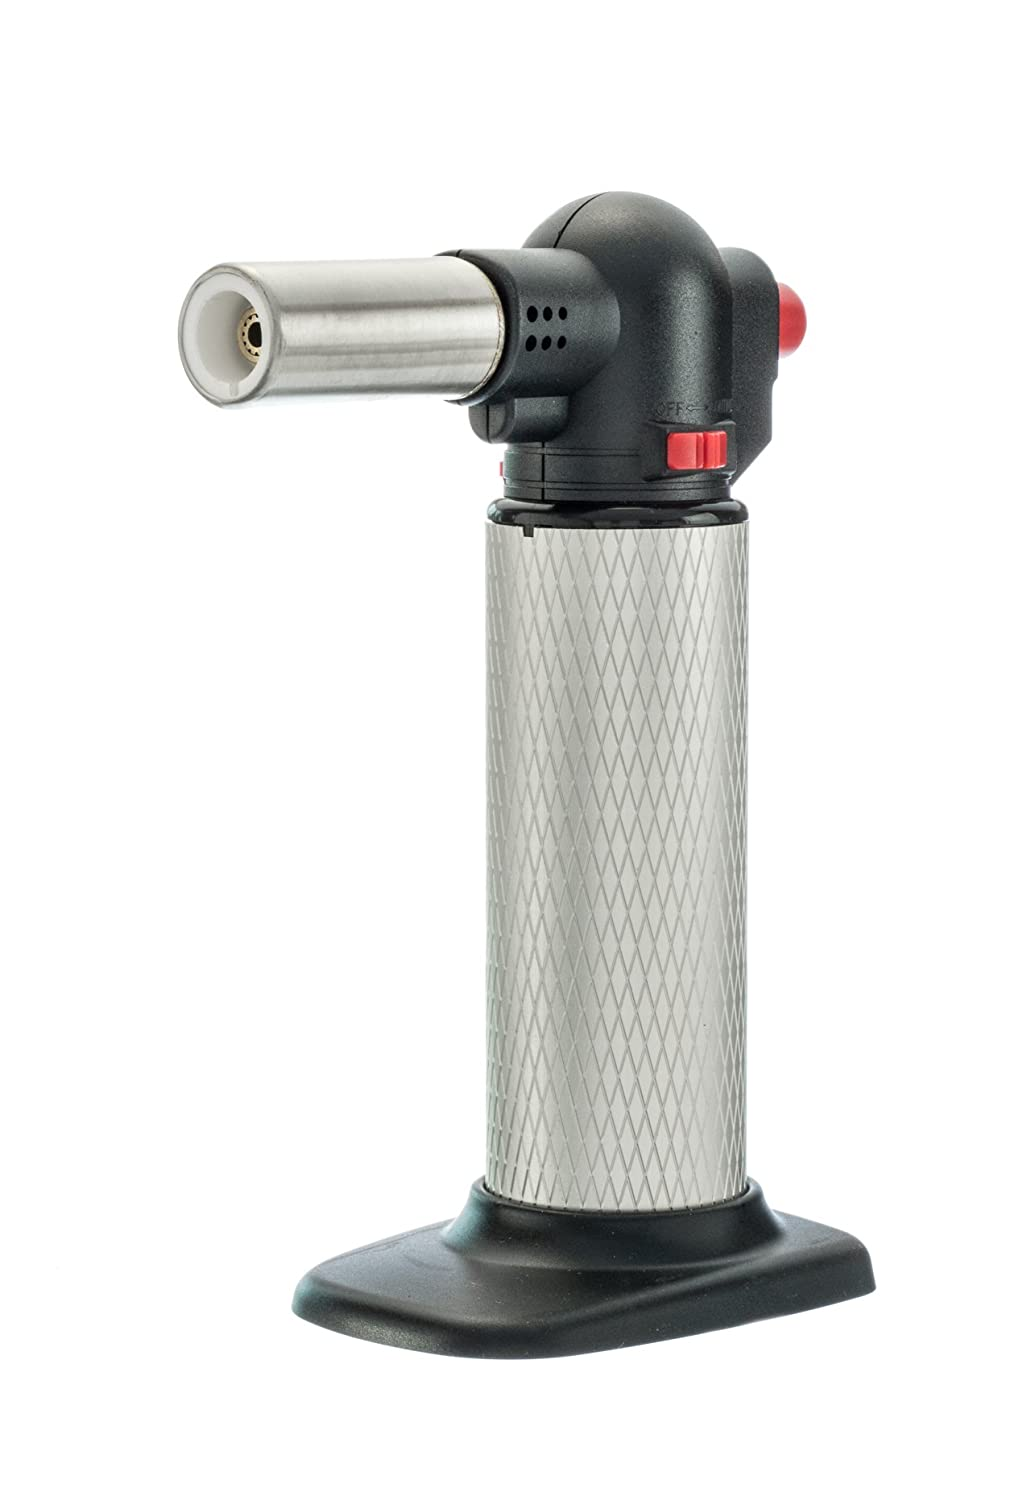 SE MT7706 Micro Torch with Large Flame Nozzle, Taiwan